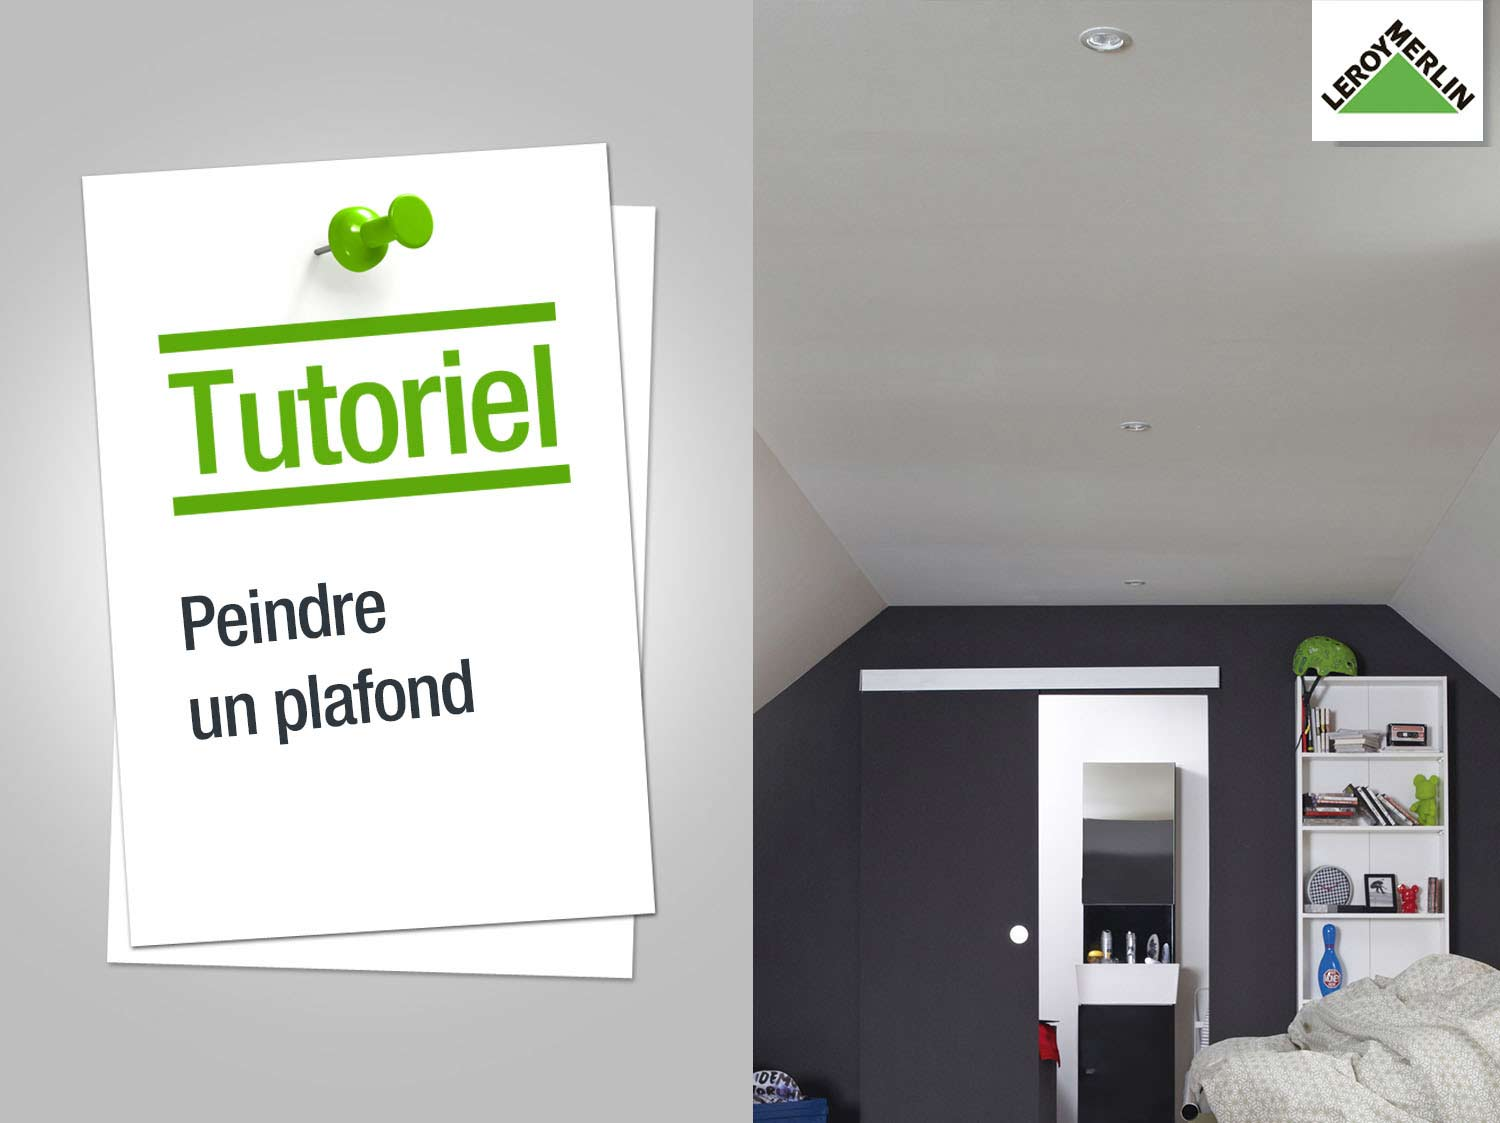 repeindre un plafond peindre un plafond repeindre un plafond avec poutres en bois apparentes. Black Bedroom Furniture Sets. Home Design Ideas